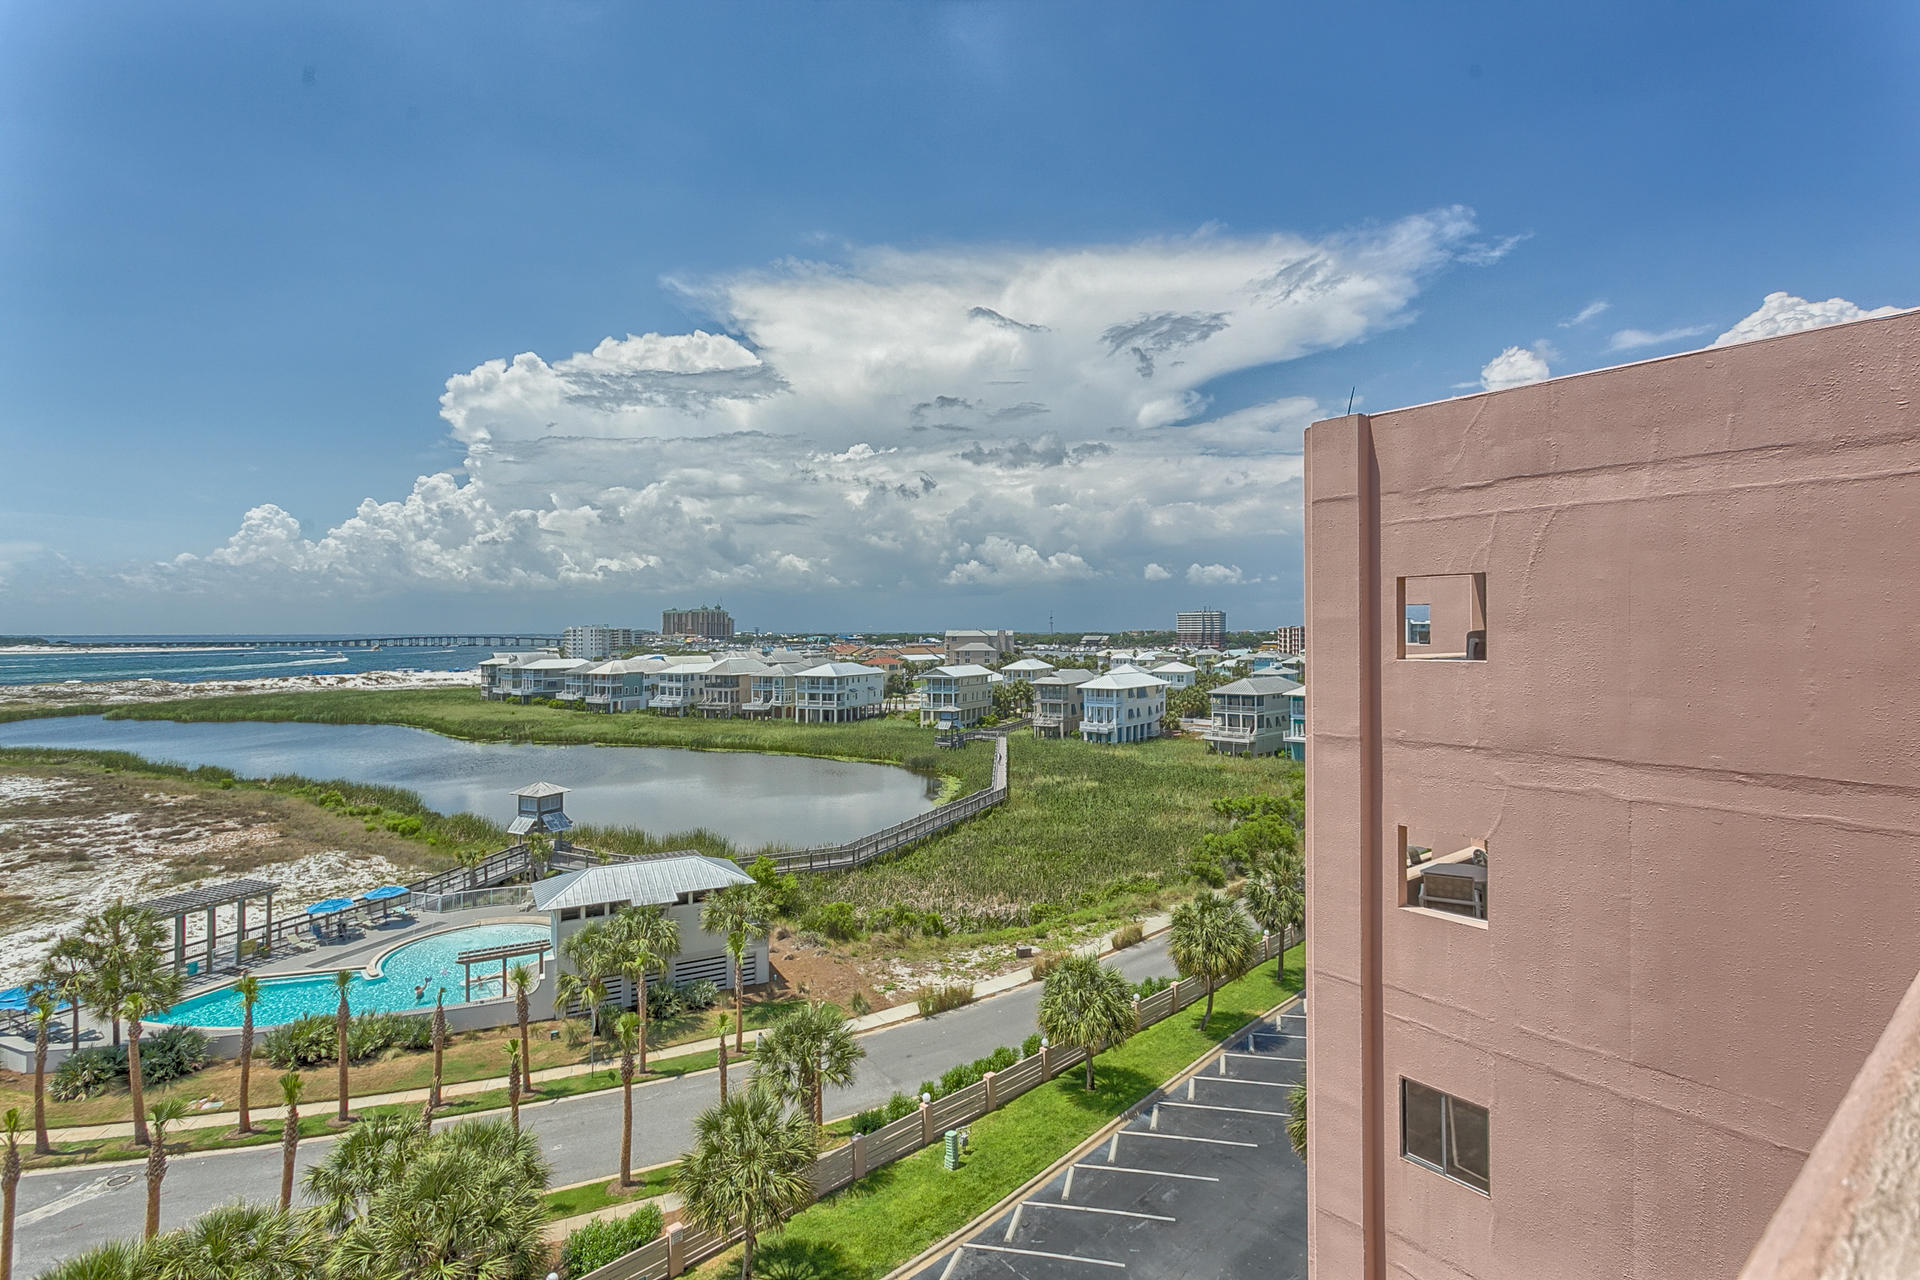 Gorgeous Destin Harbor & Jetty View from this ''top'' floor 1 Bedroom Condo.  The Master Bedroom has a King Bed and a ceiling fan to keep you cool.  The Kitchen has new appliances and there is a sleeper sofa in the living area.  This Condo has a new A/C system, new Windows and a new Sliding Glass Door with the added comfort of a screen for the Sliding Glass Door.